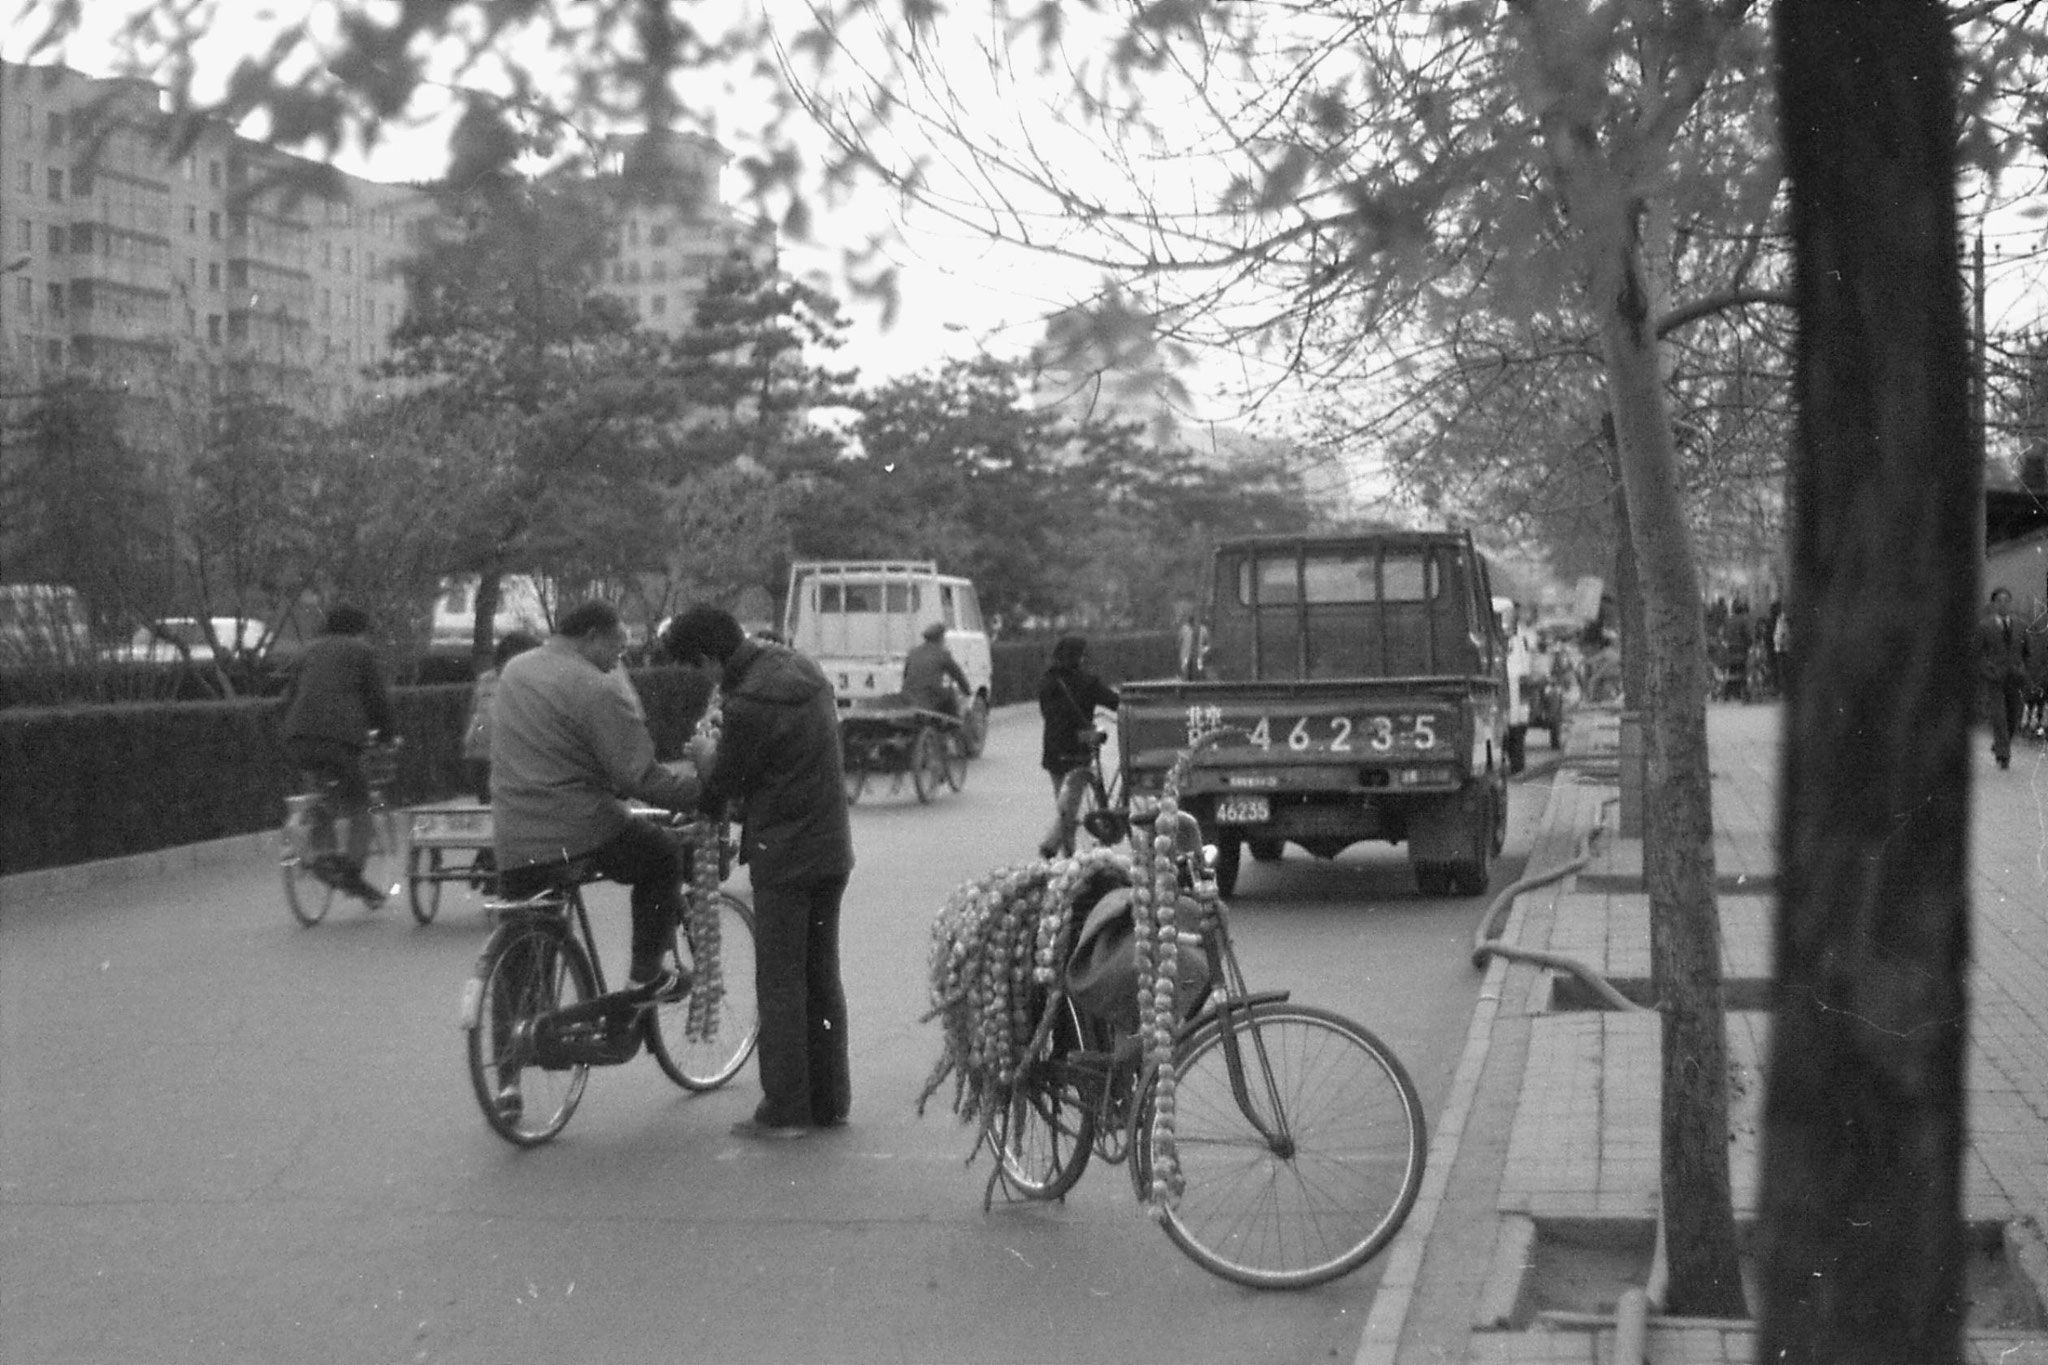 14/11/1988: 24: Road in front of Beijing Hotel